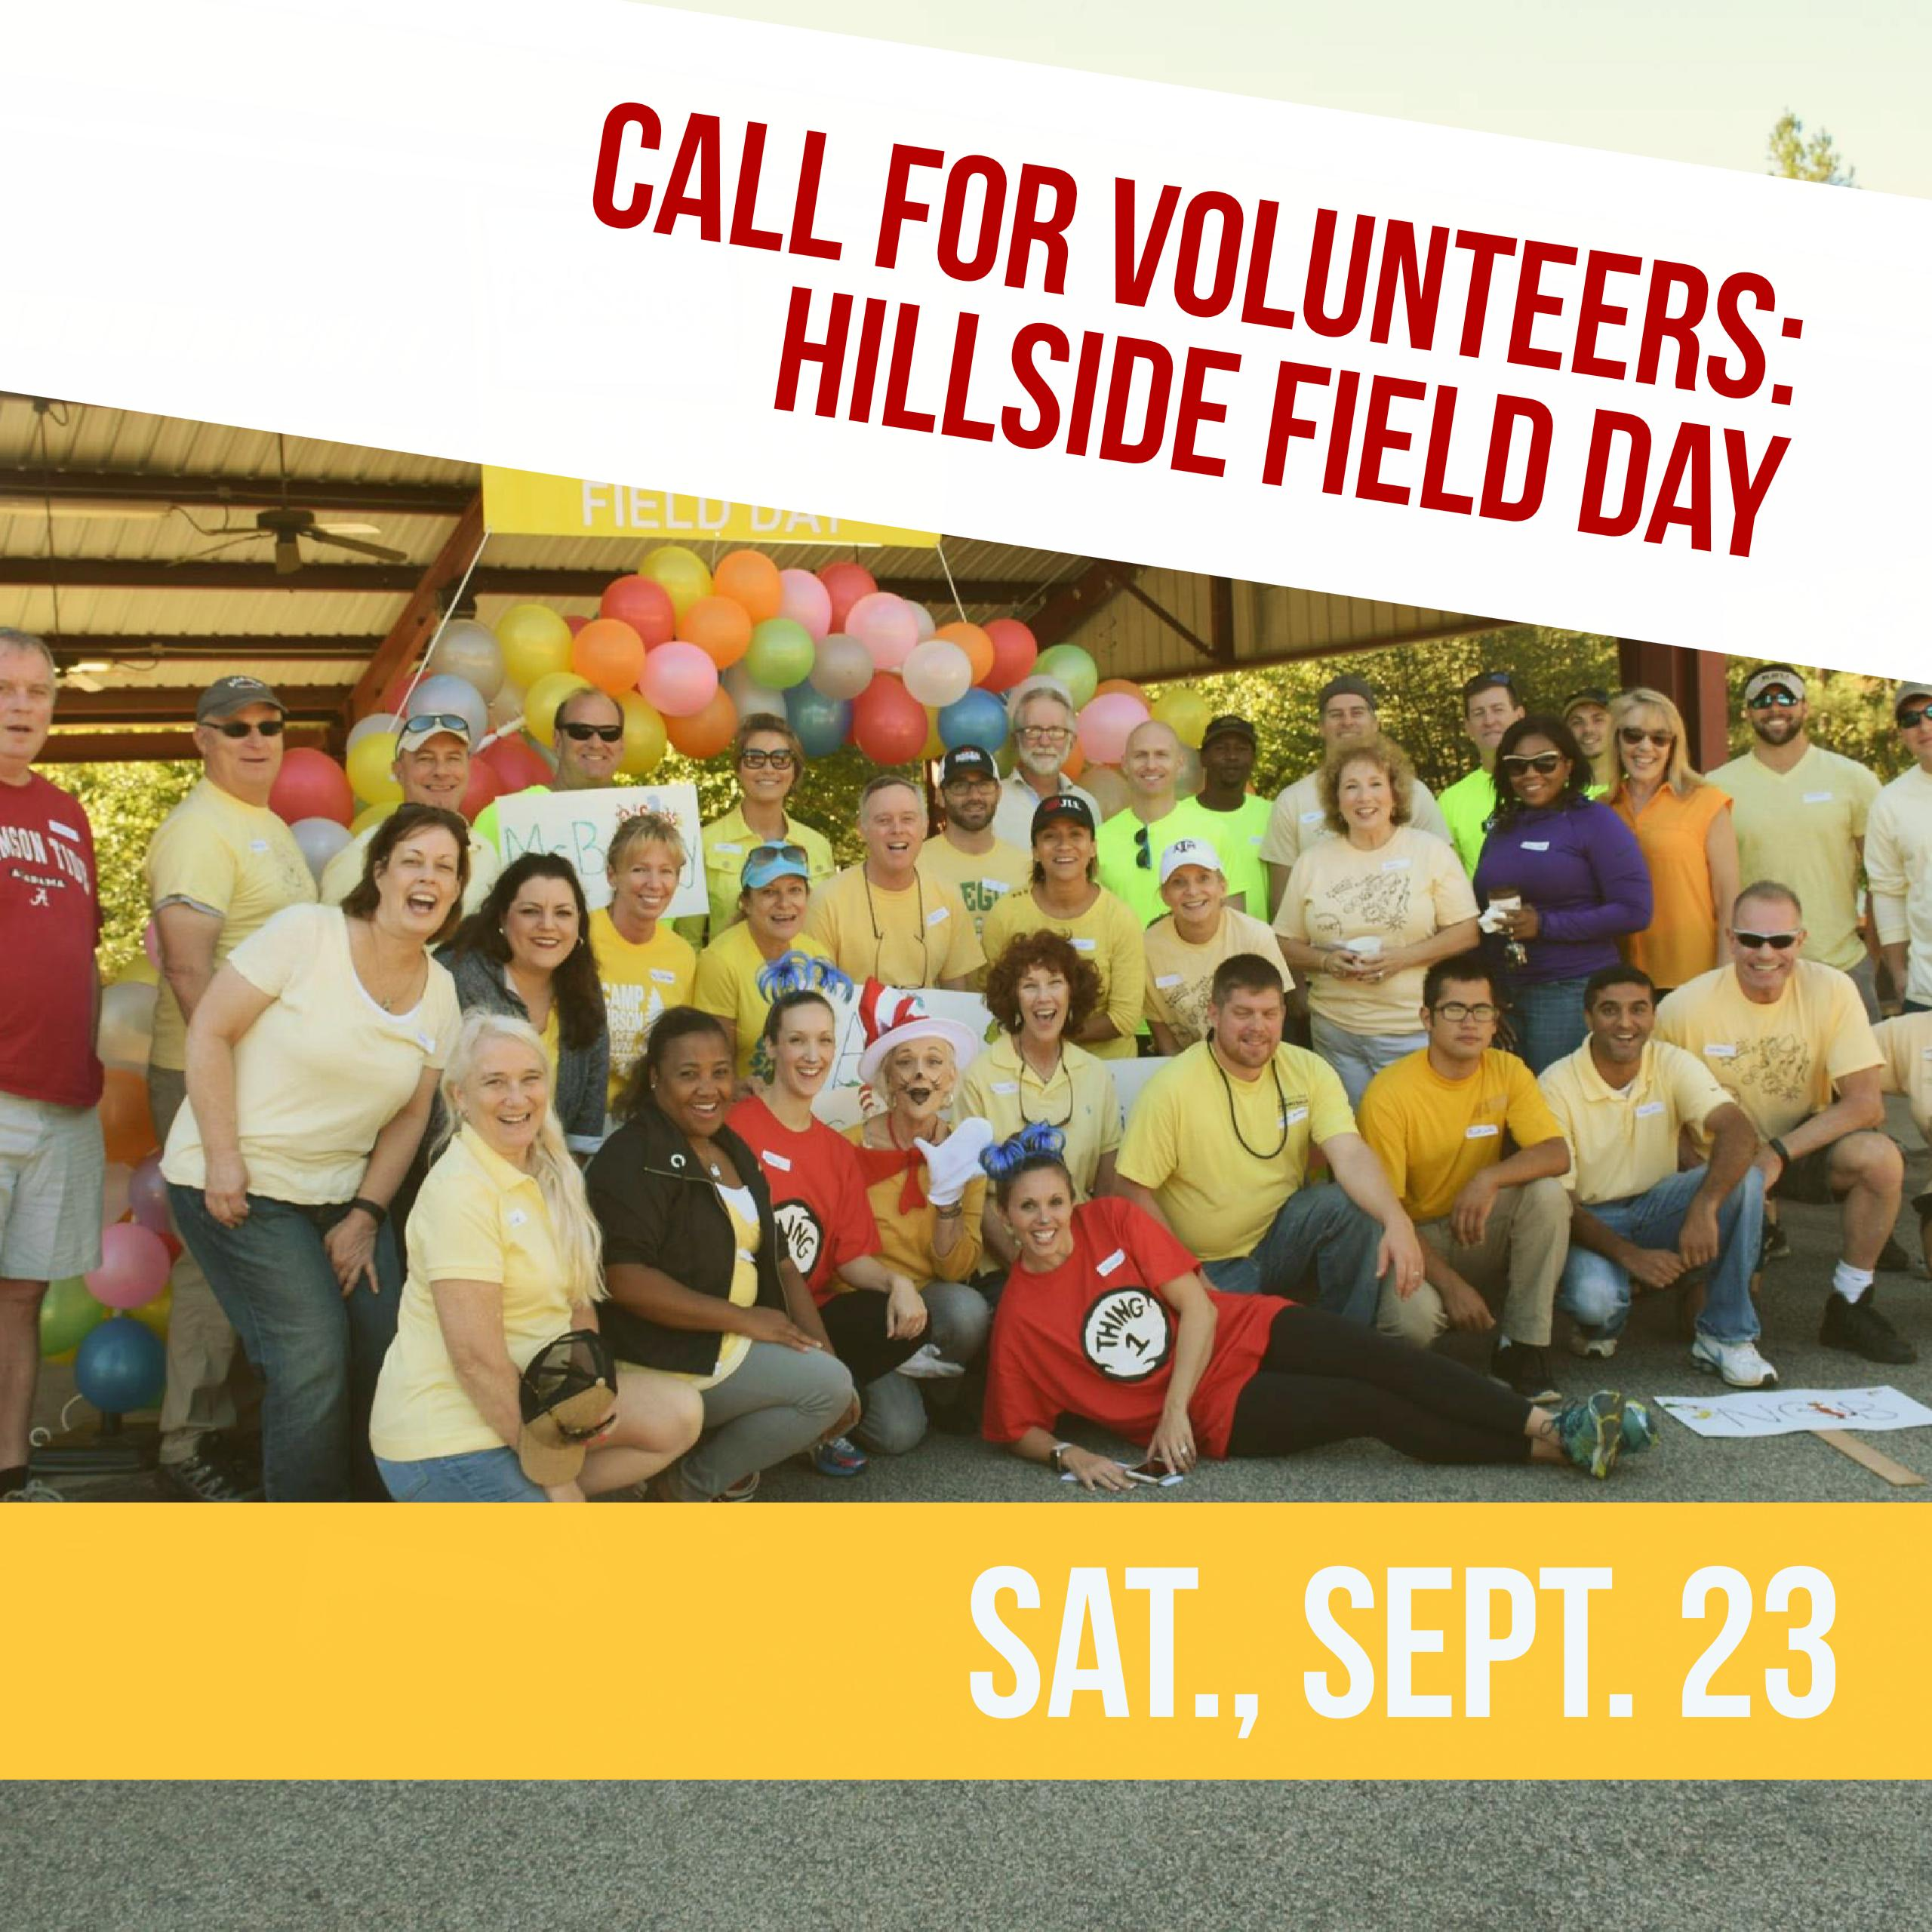 Hillside Field Day